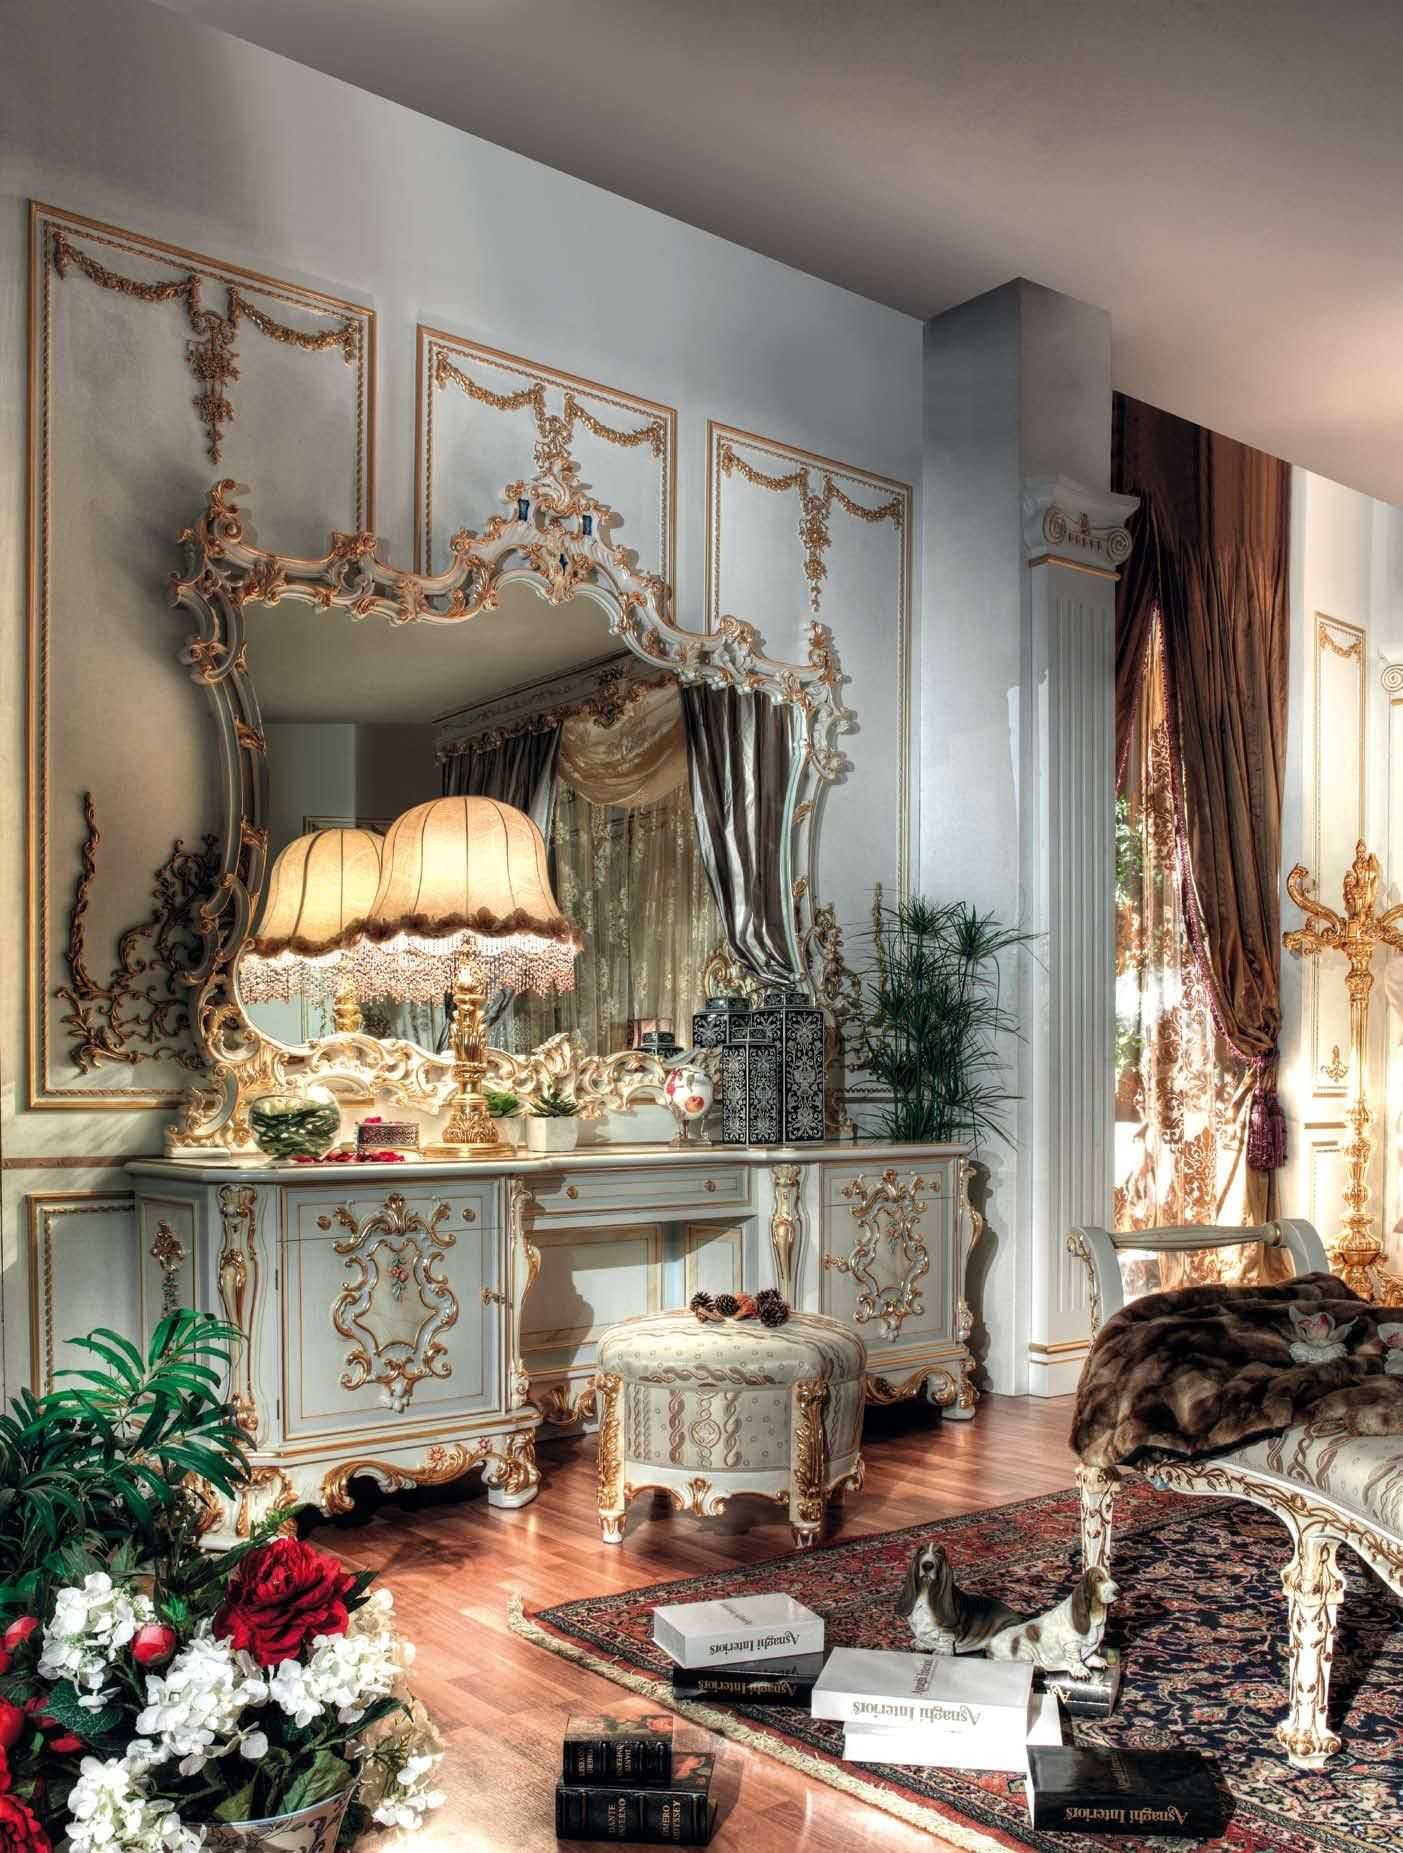 King Bed Room Royal Suite Gold Italy Finish Top and Best